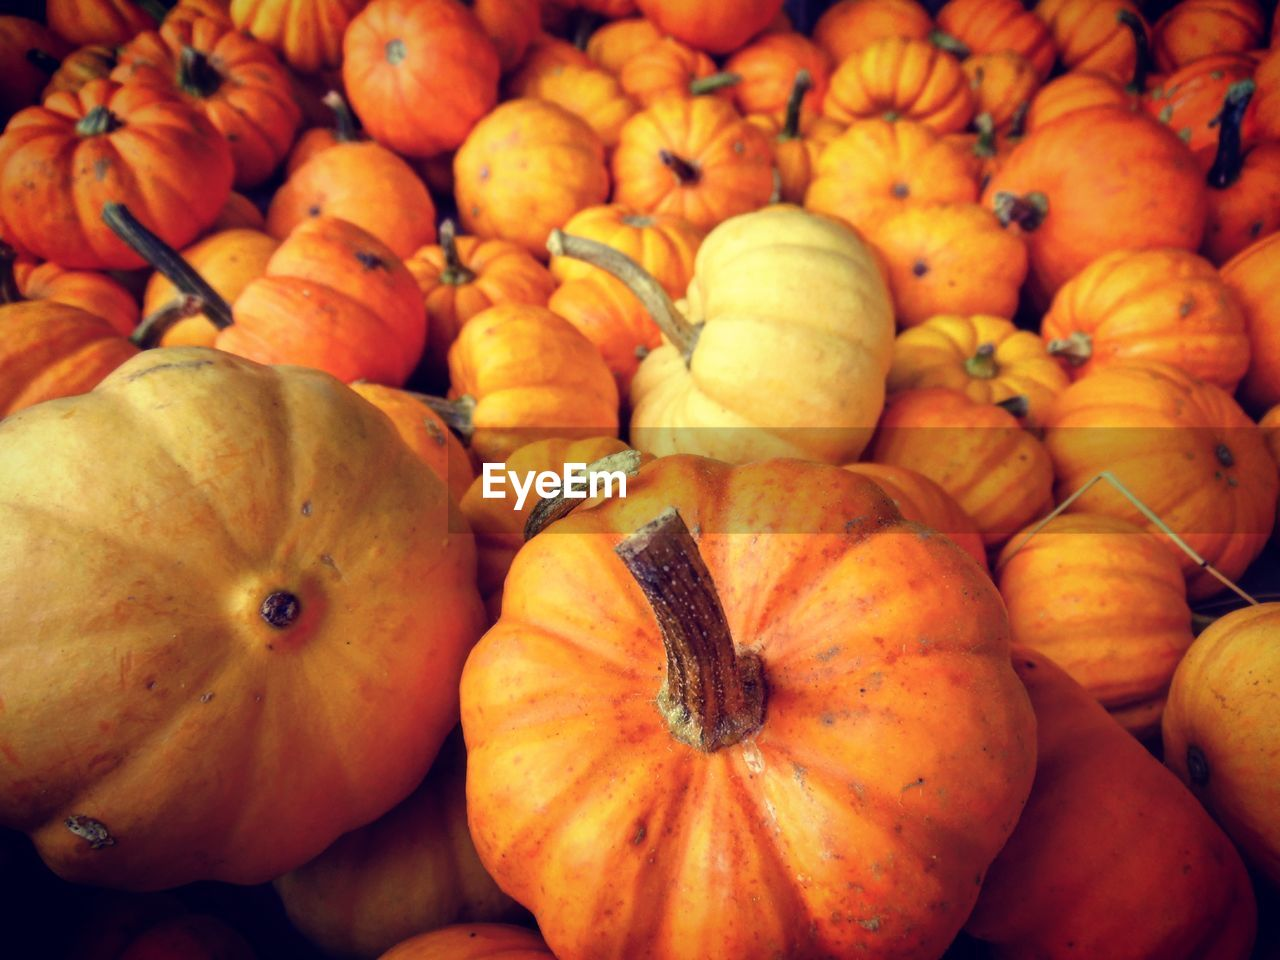 pumpkin, food and drink, healthy eating, food, freshness, abundance, for sale, orange color, vegetable, retail, fruit, market, no people, full frame, backgrounds, close-up, large group of objects, halloween, squash - vegetable, day, gourd, outdoors